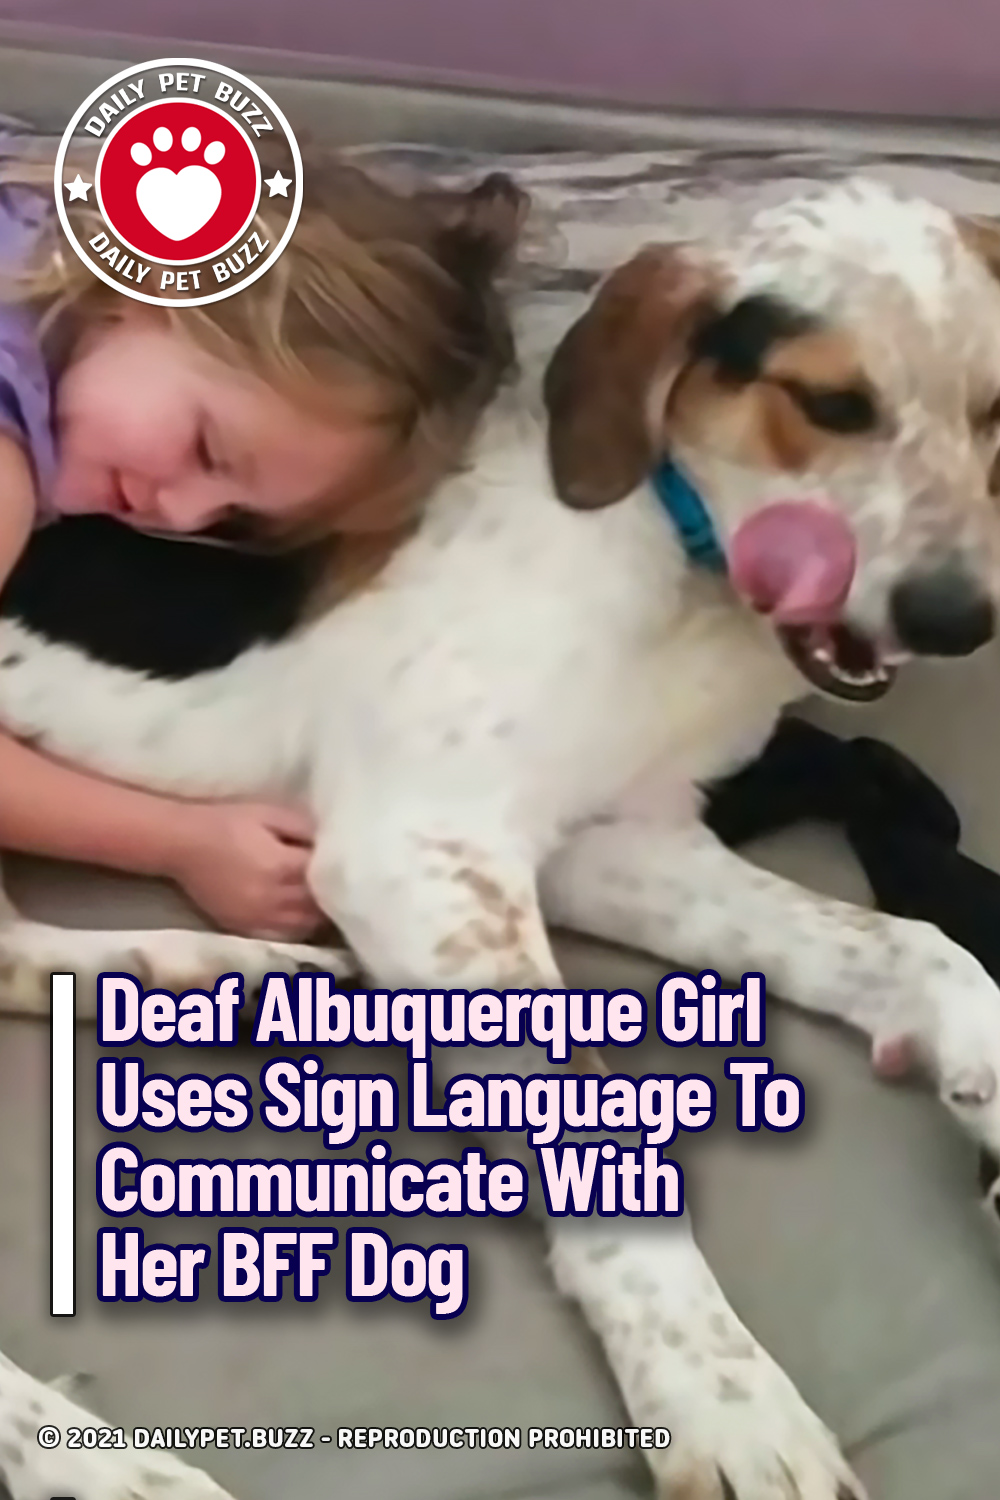 Deaf Albuquerque Girl Uses Sign Language To Communicate With Her BFF Dog